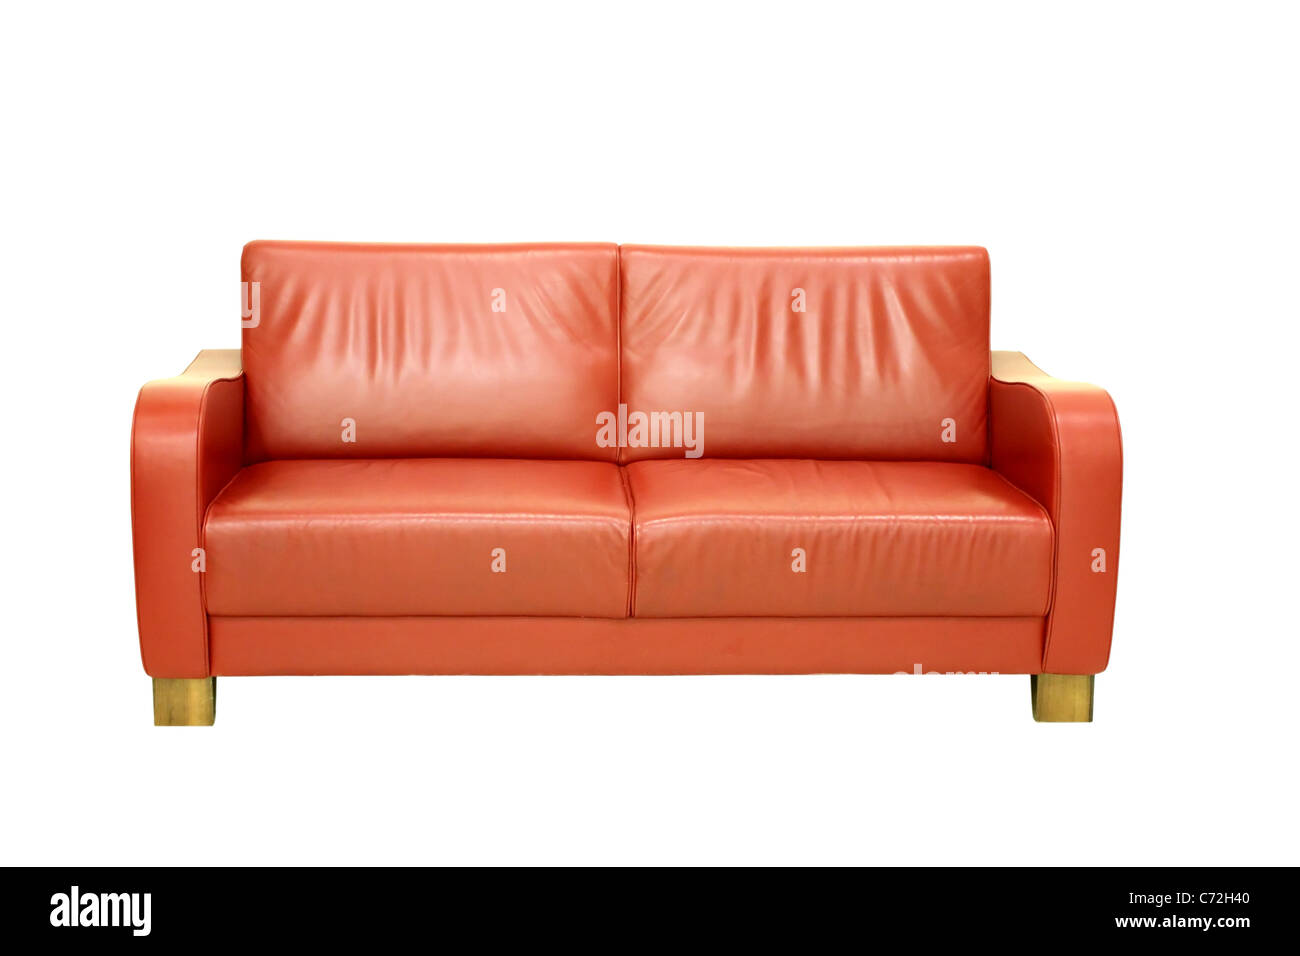 Red Sofa Stock Photos & Red Sofa Stock Images - Alamy